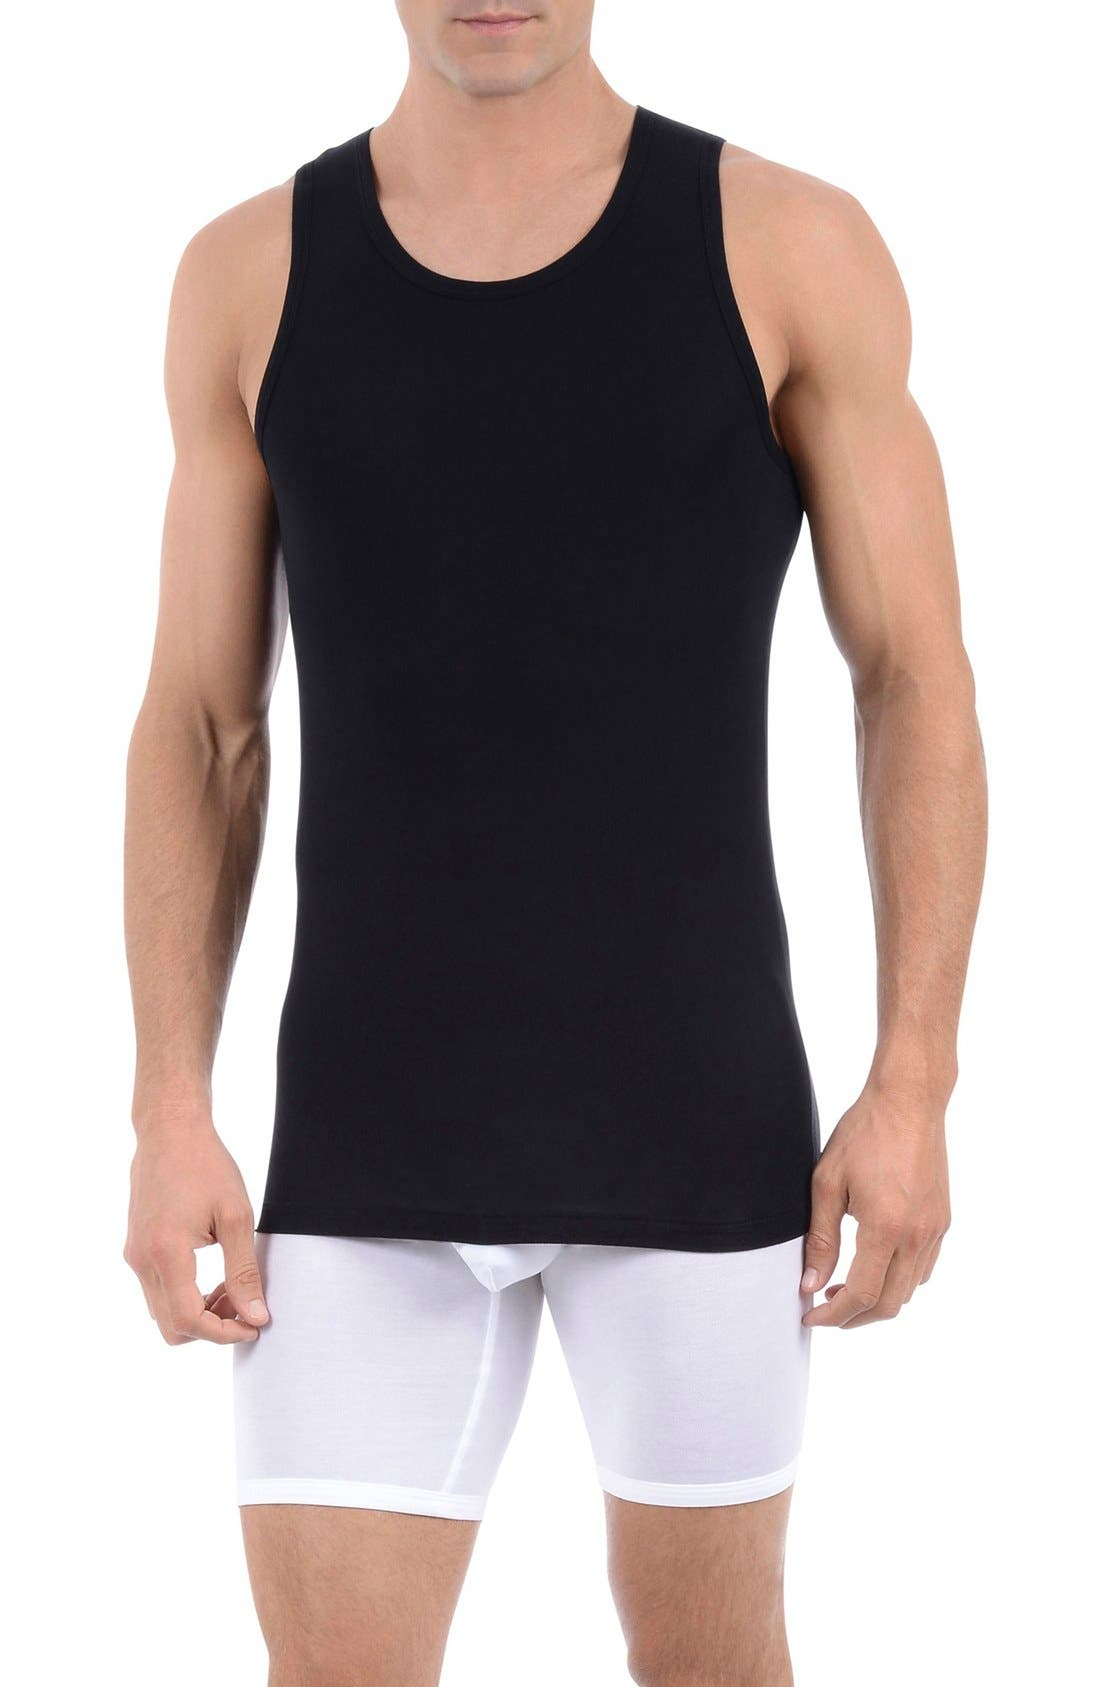 Tommy John 'Second Skin' Tank Undershirt